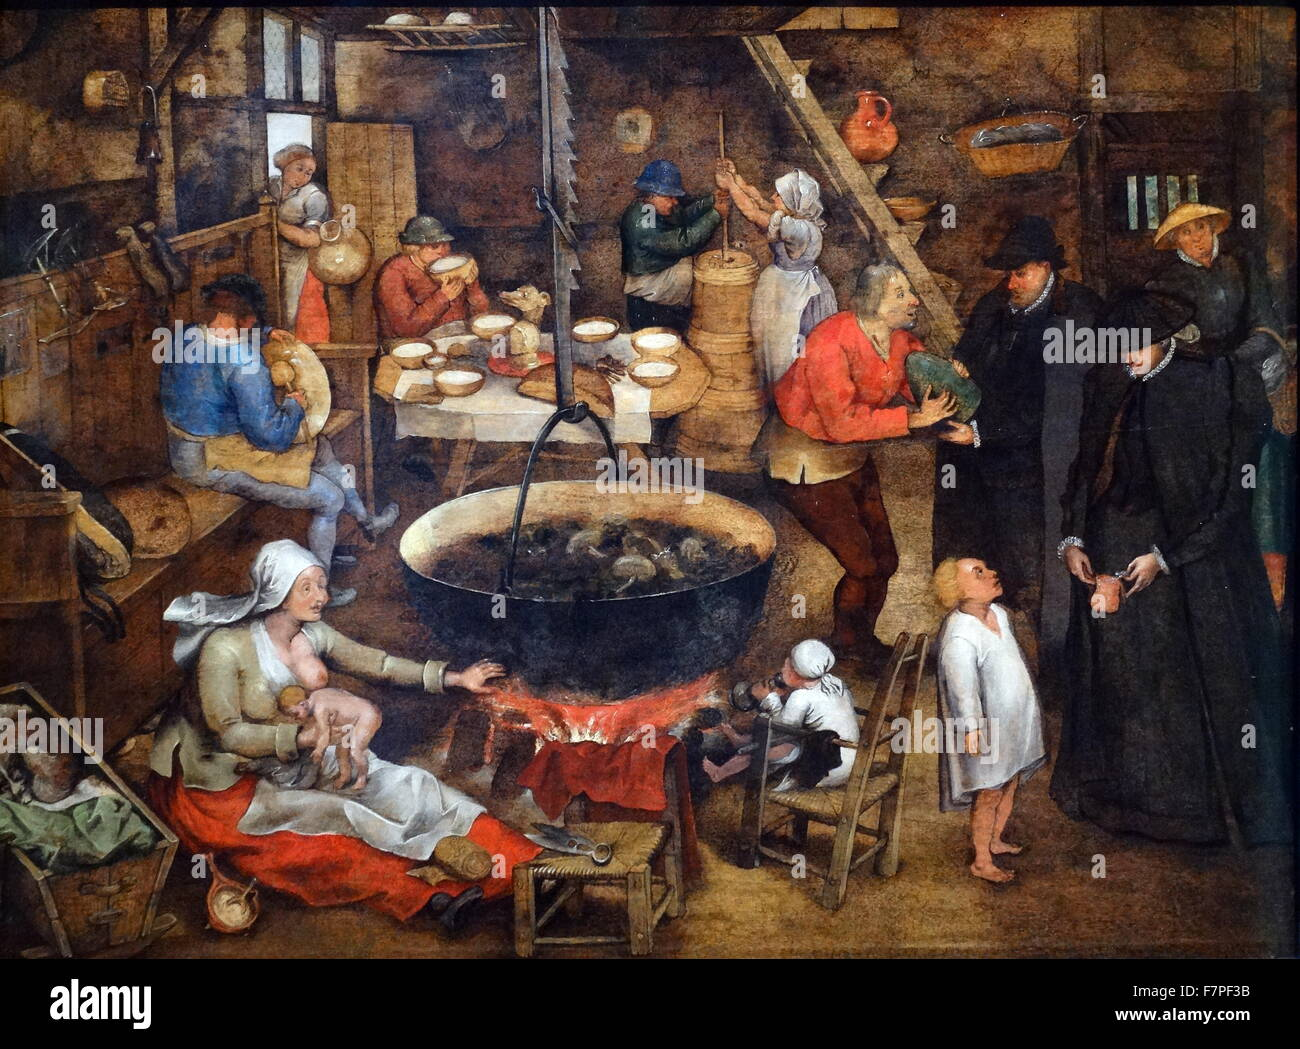 The Visit of the Godfather by Pieter Brueghel the Younger 1565-1638. Oil on Panel - Stock Image